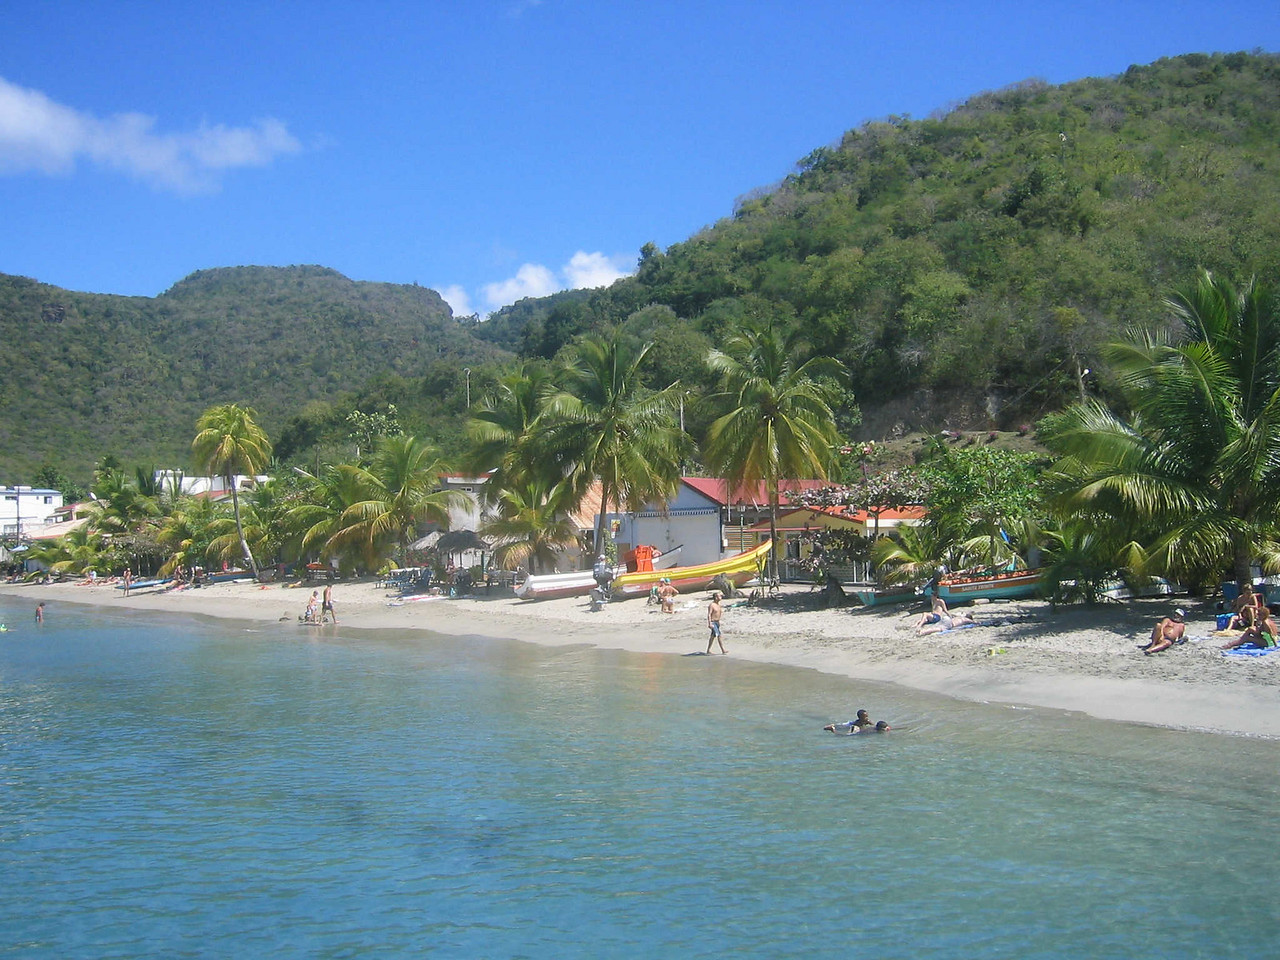 There are restaurants and rentals along the beach in Grande Anse.